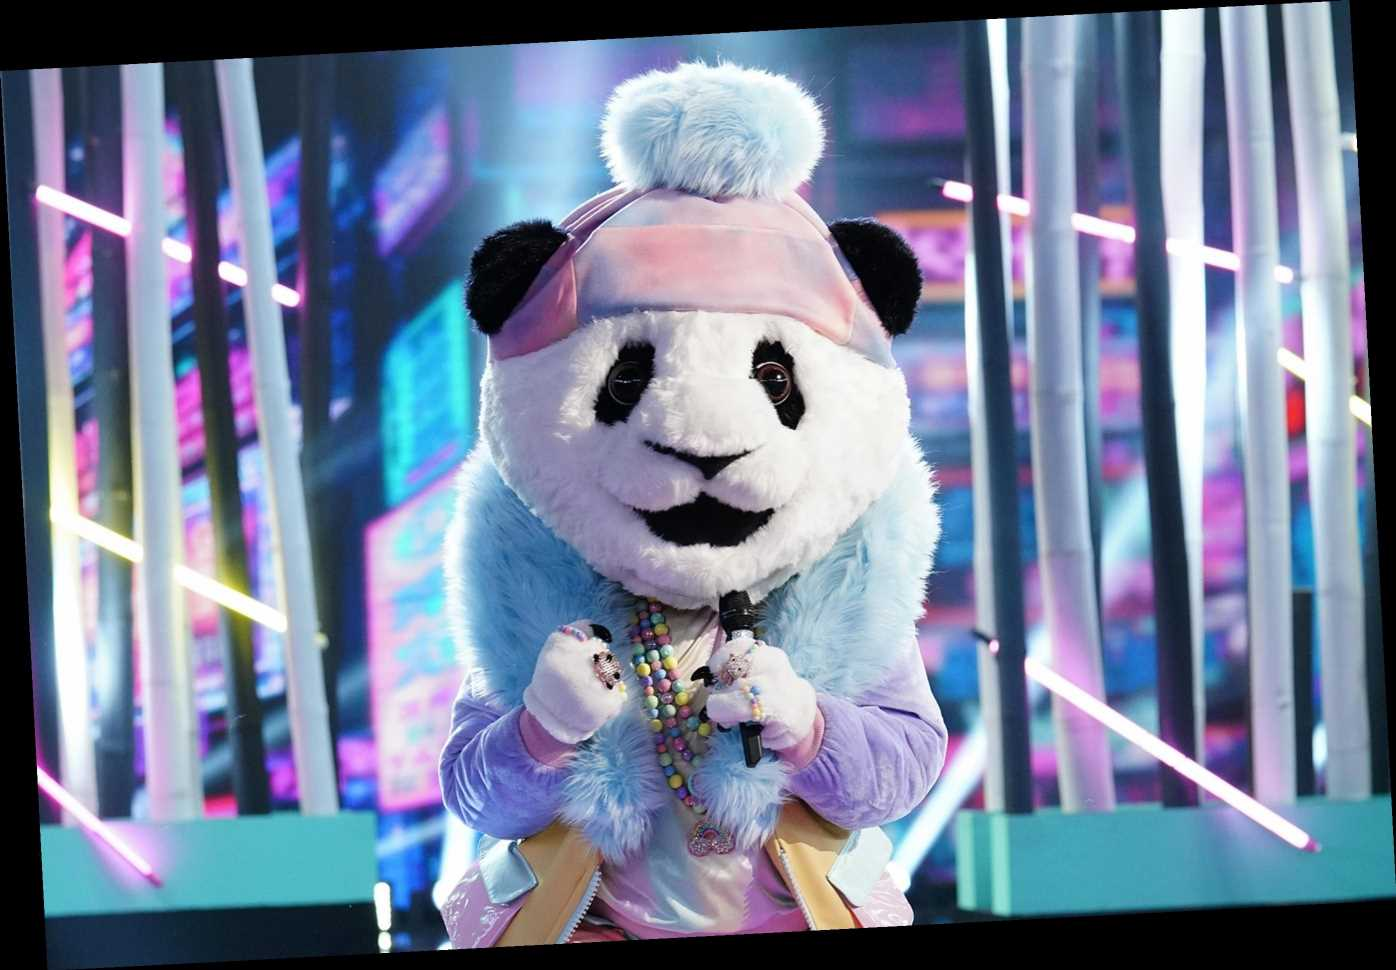 The Masked Singer: The Panda thinks those clues about her were a dead giveaway